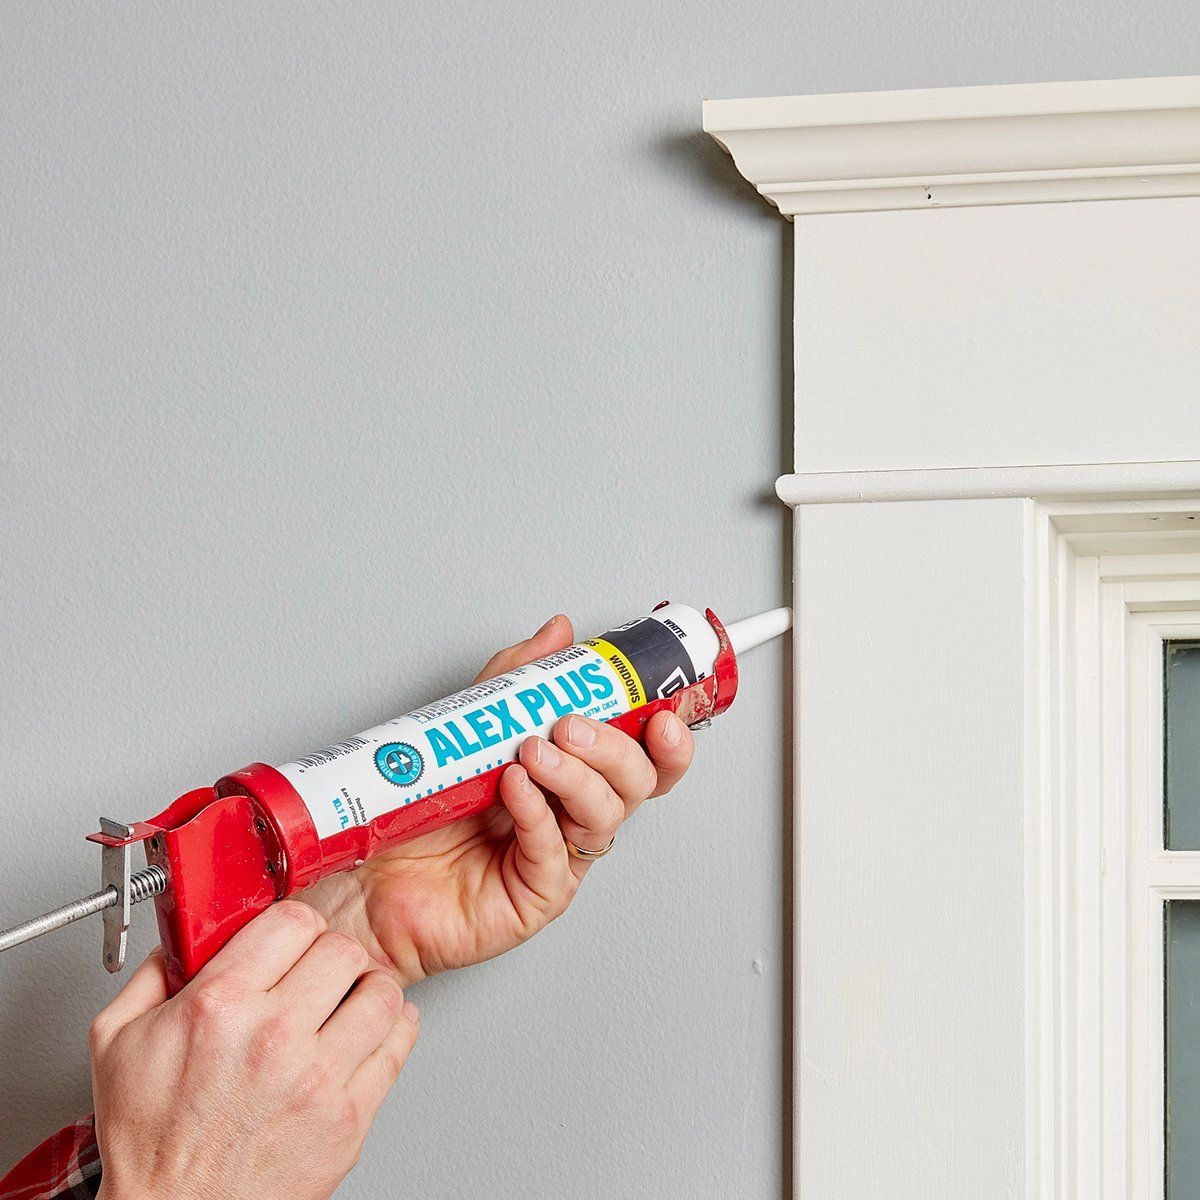 How To Choose the Right Caulk For the Job (With images